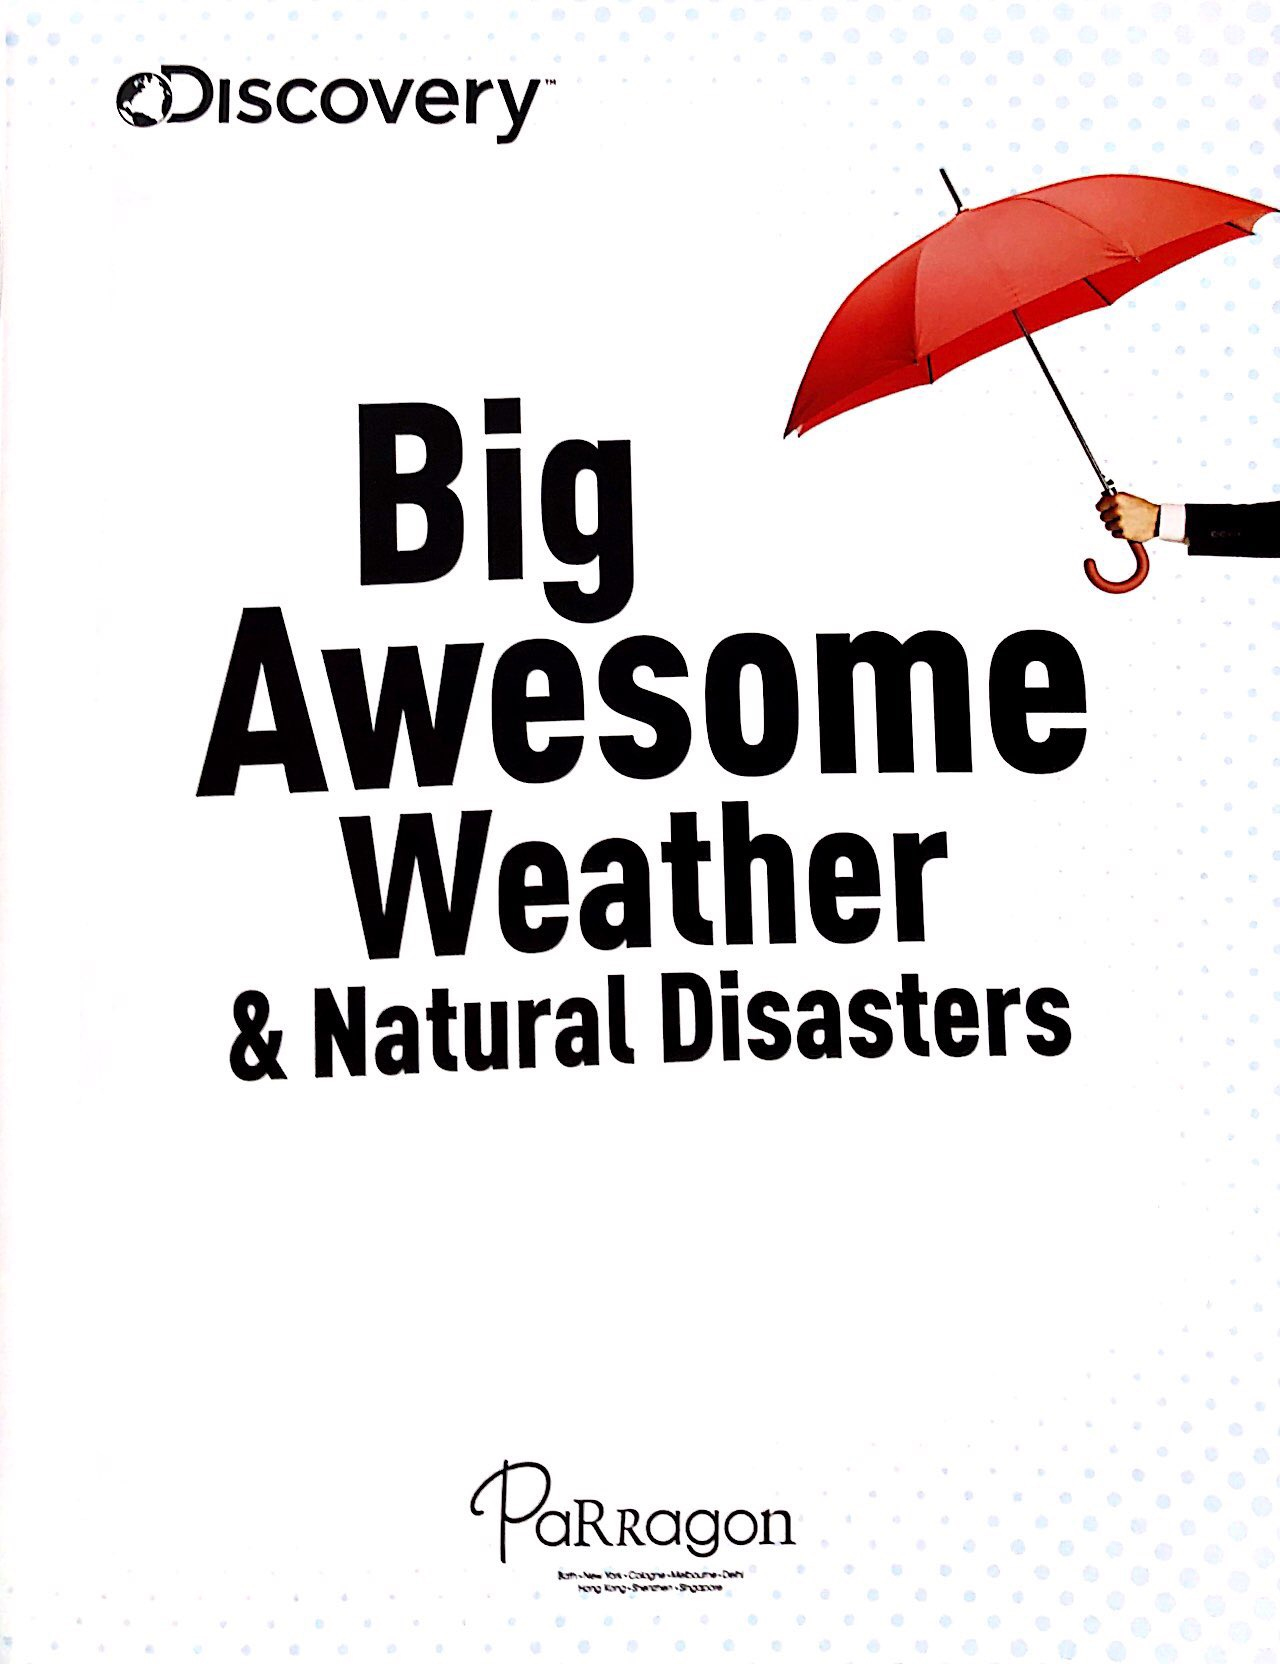 Discovery Big Awesome Weather